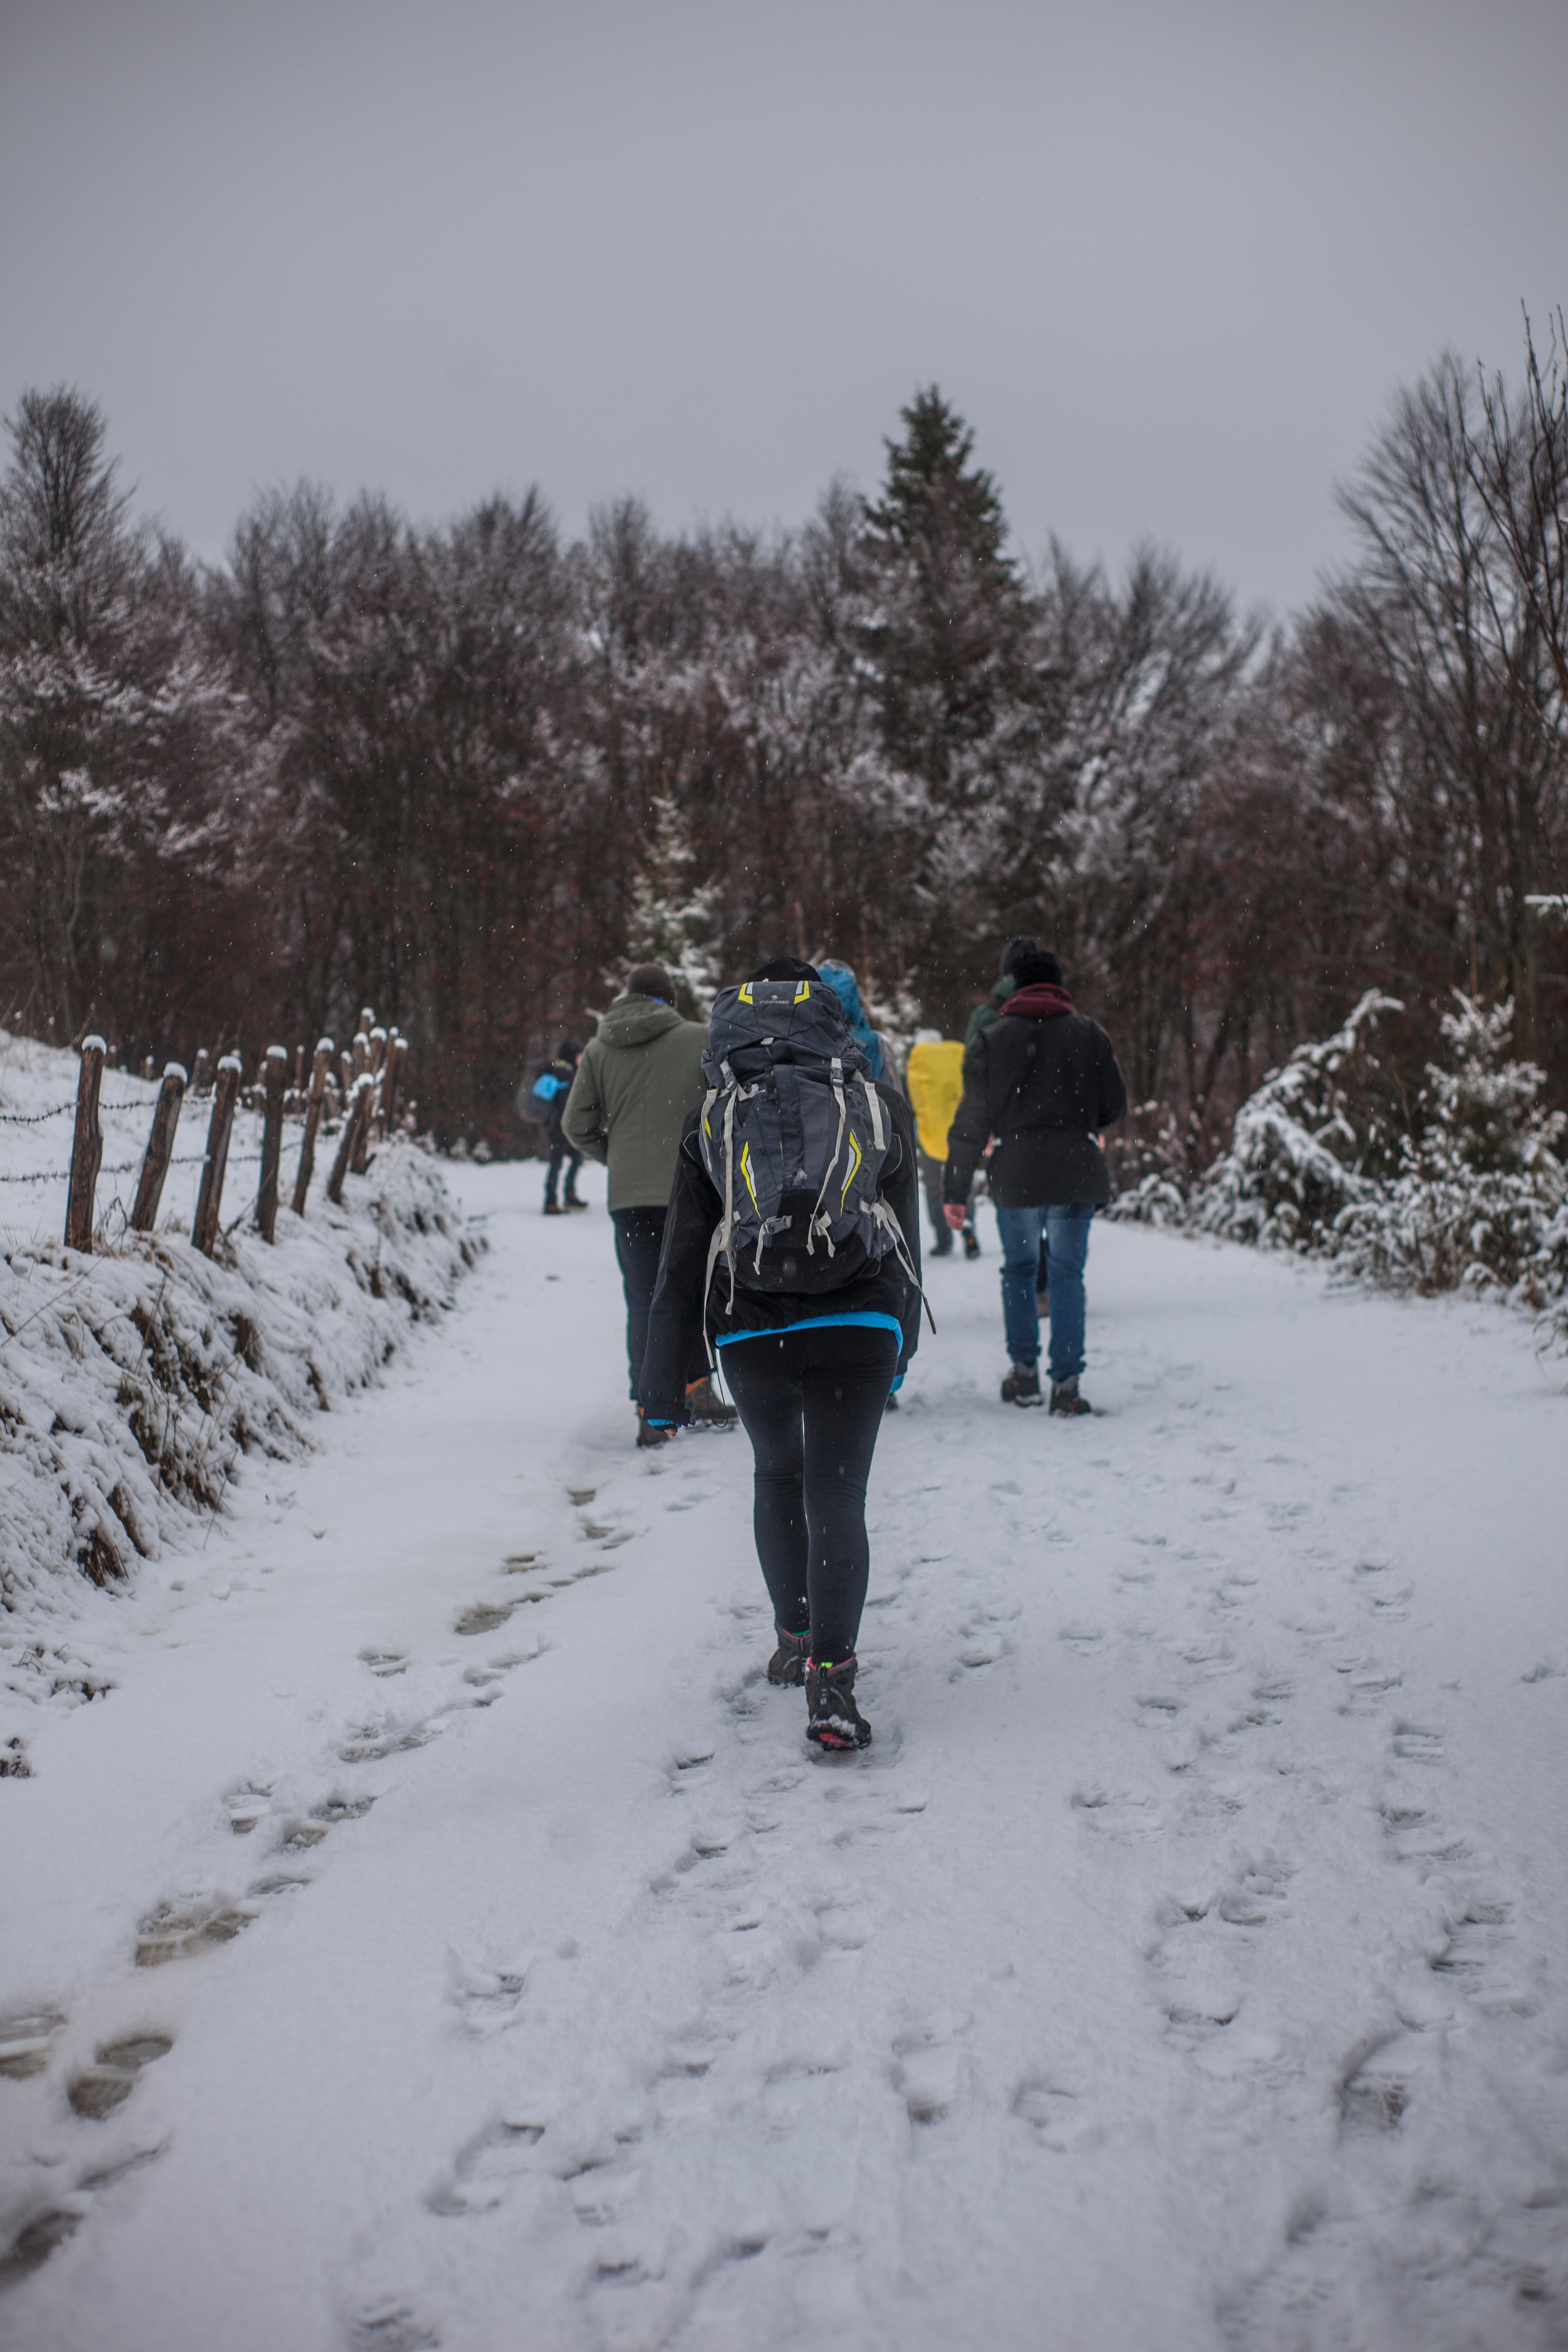 Person Wearing Green Jacket Walking on White Snow Covered Mountain